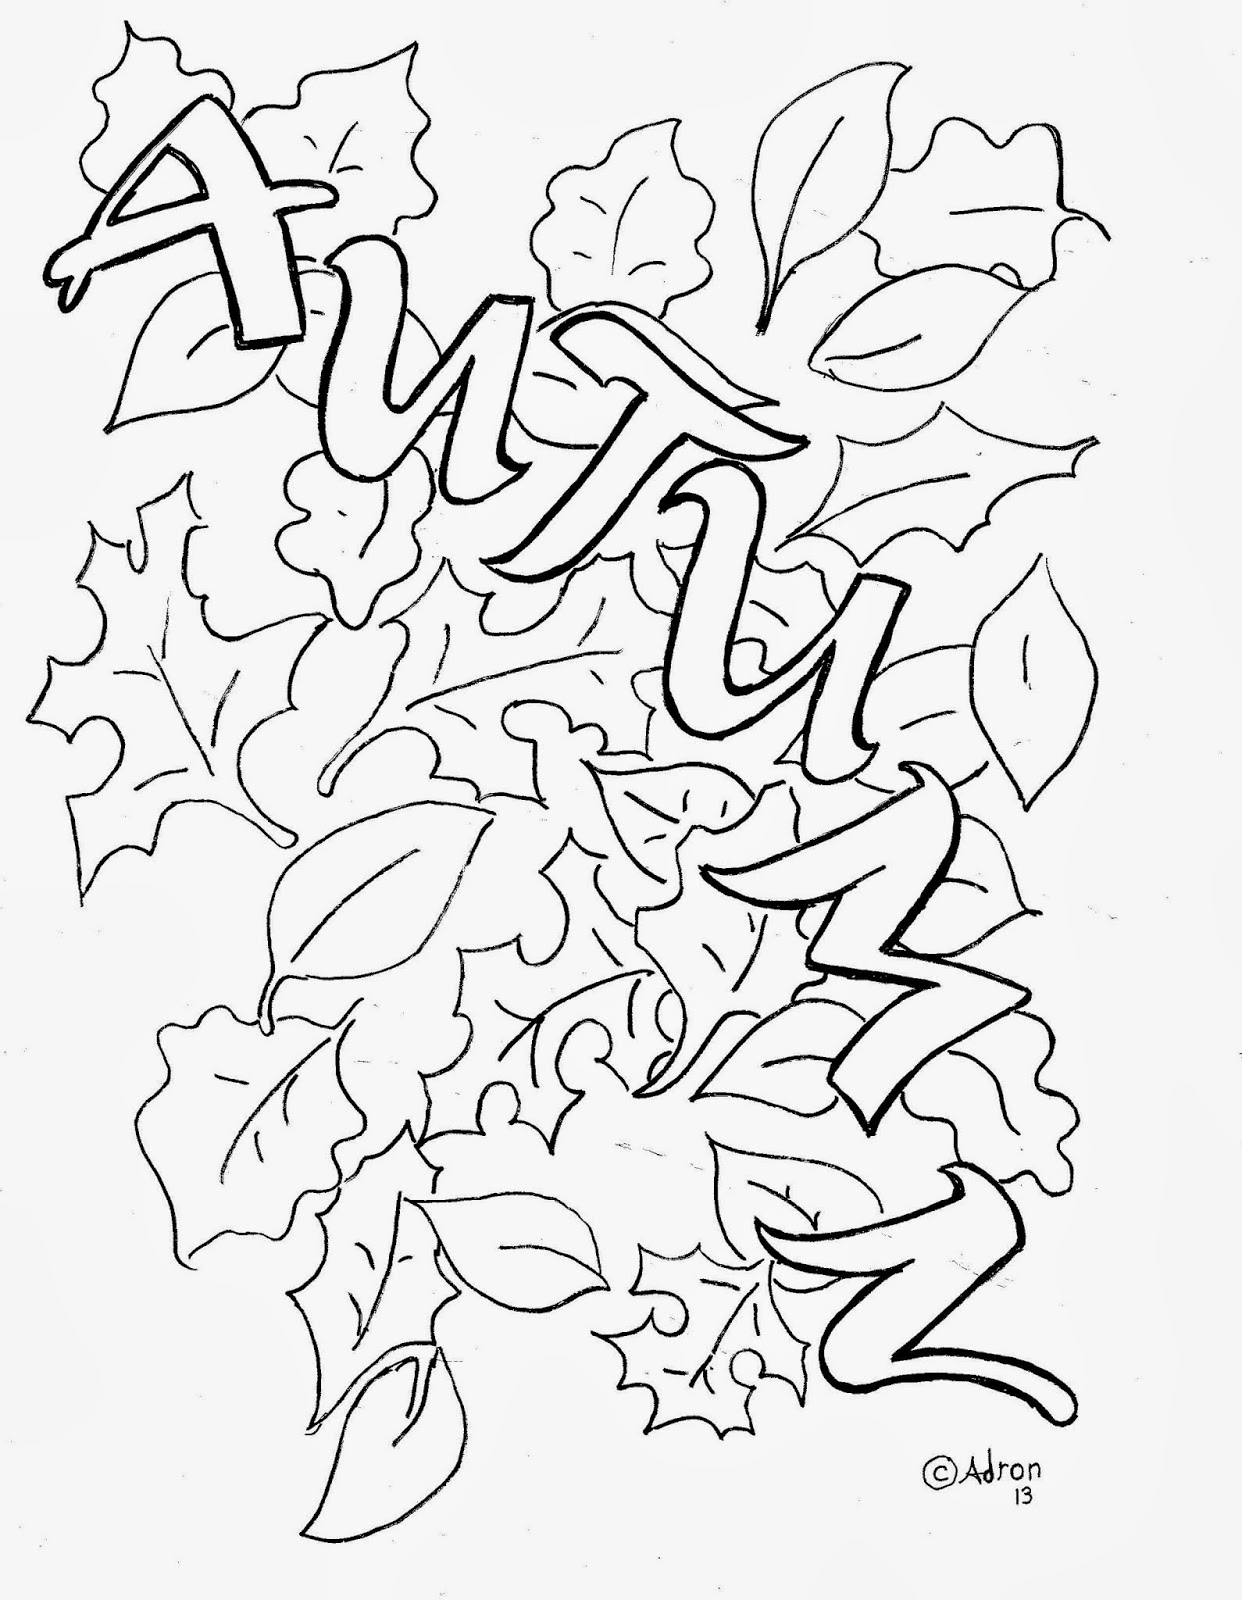 Coloring Pages for Kids by Mr. Adron: Autumn Leaves ...